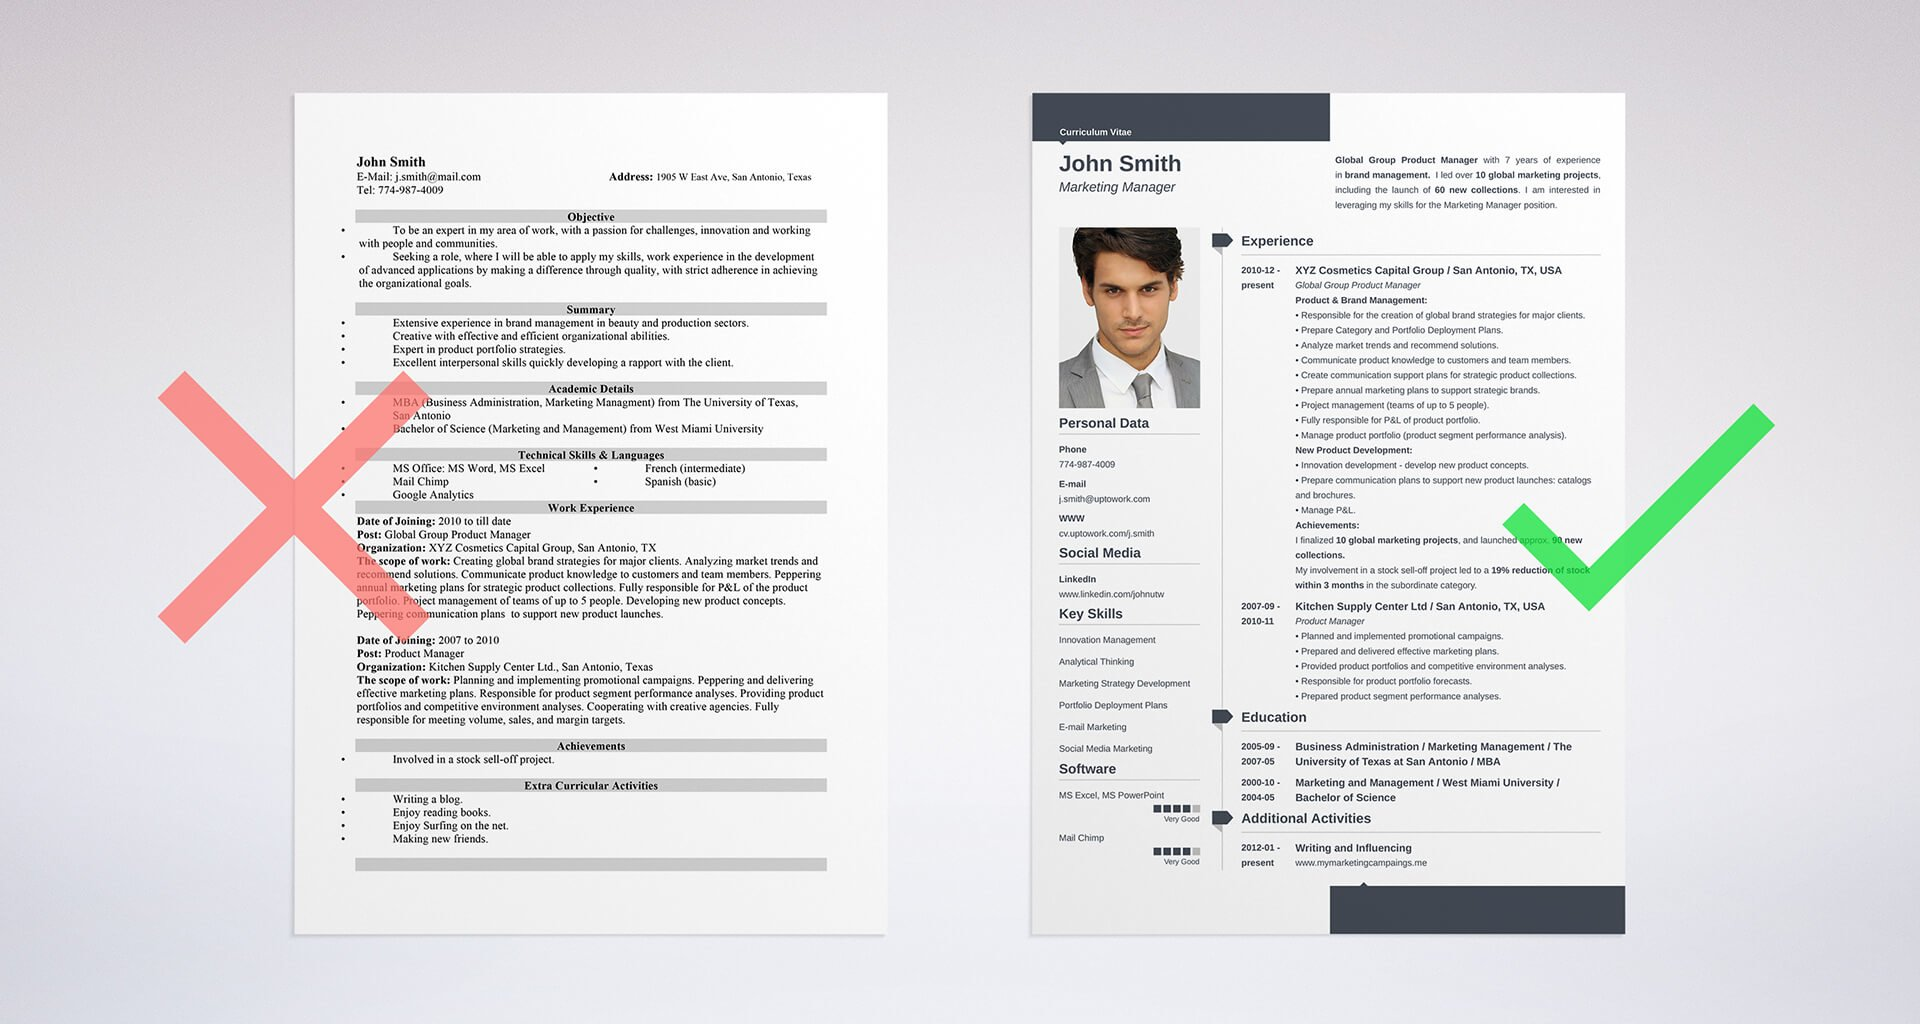 resume Best Things To Say On A Resume 30 best examples of what skills to put on a resume proven tips tips